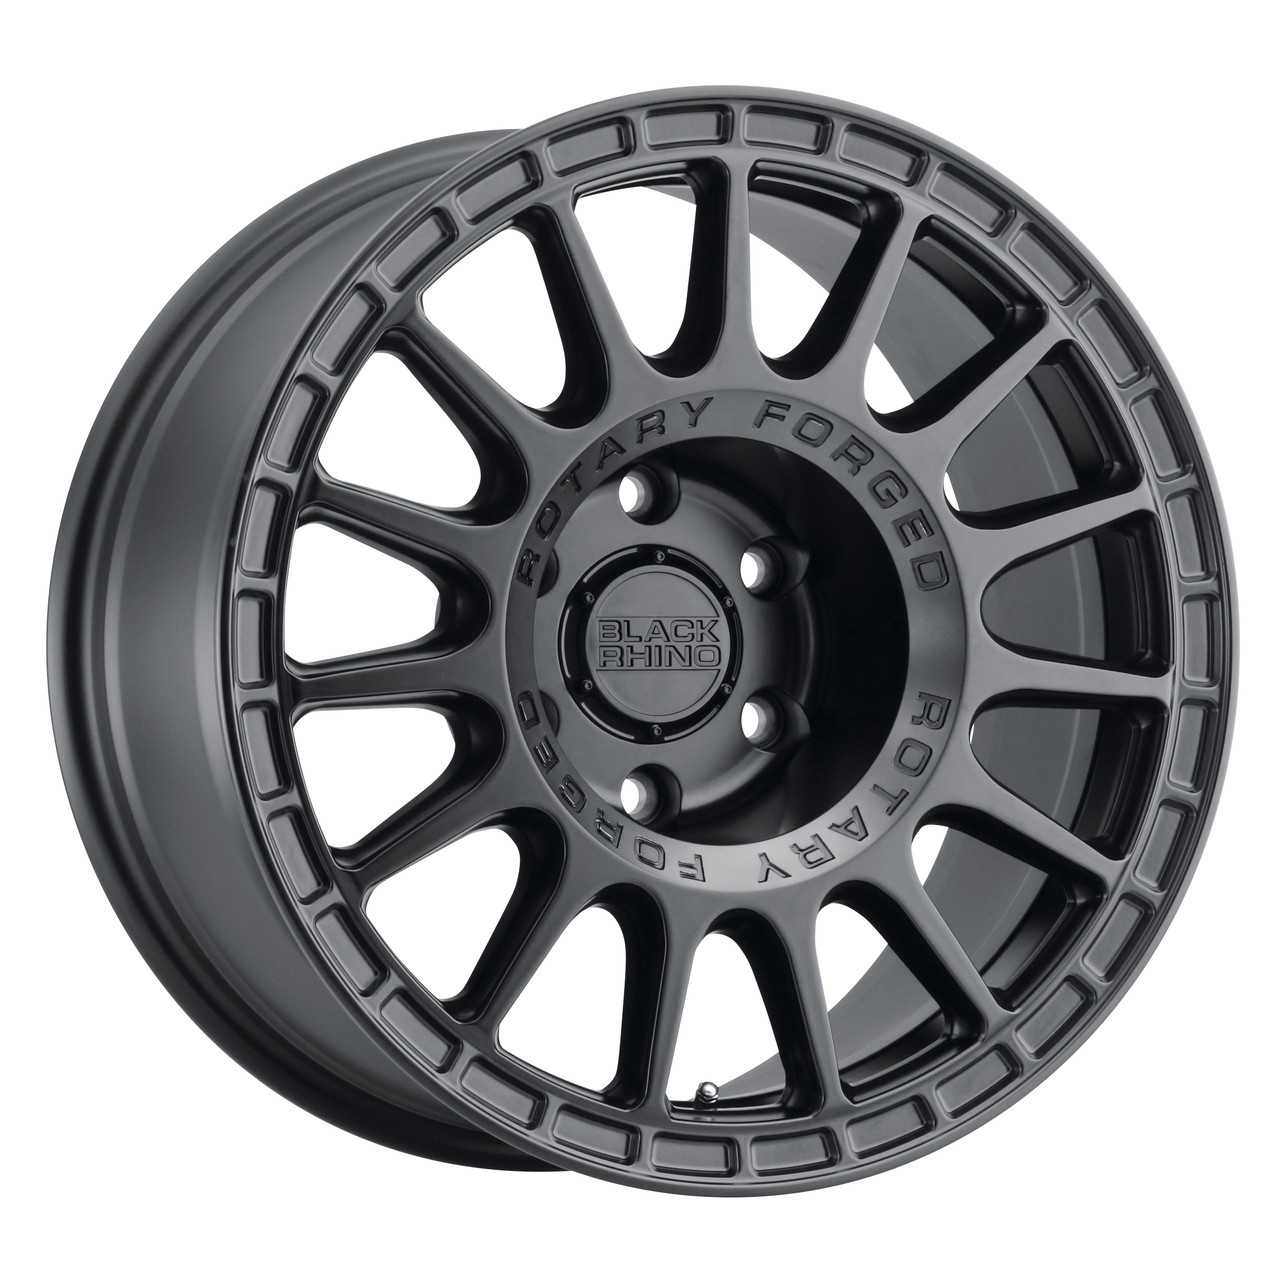 Black Rhino Sandstorm available in 18x8